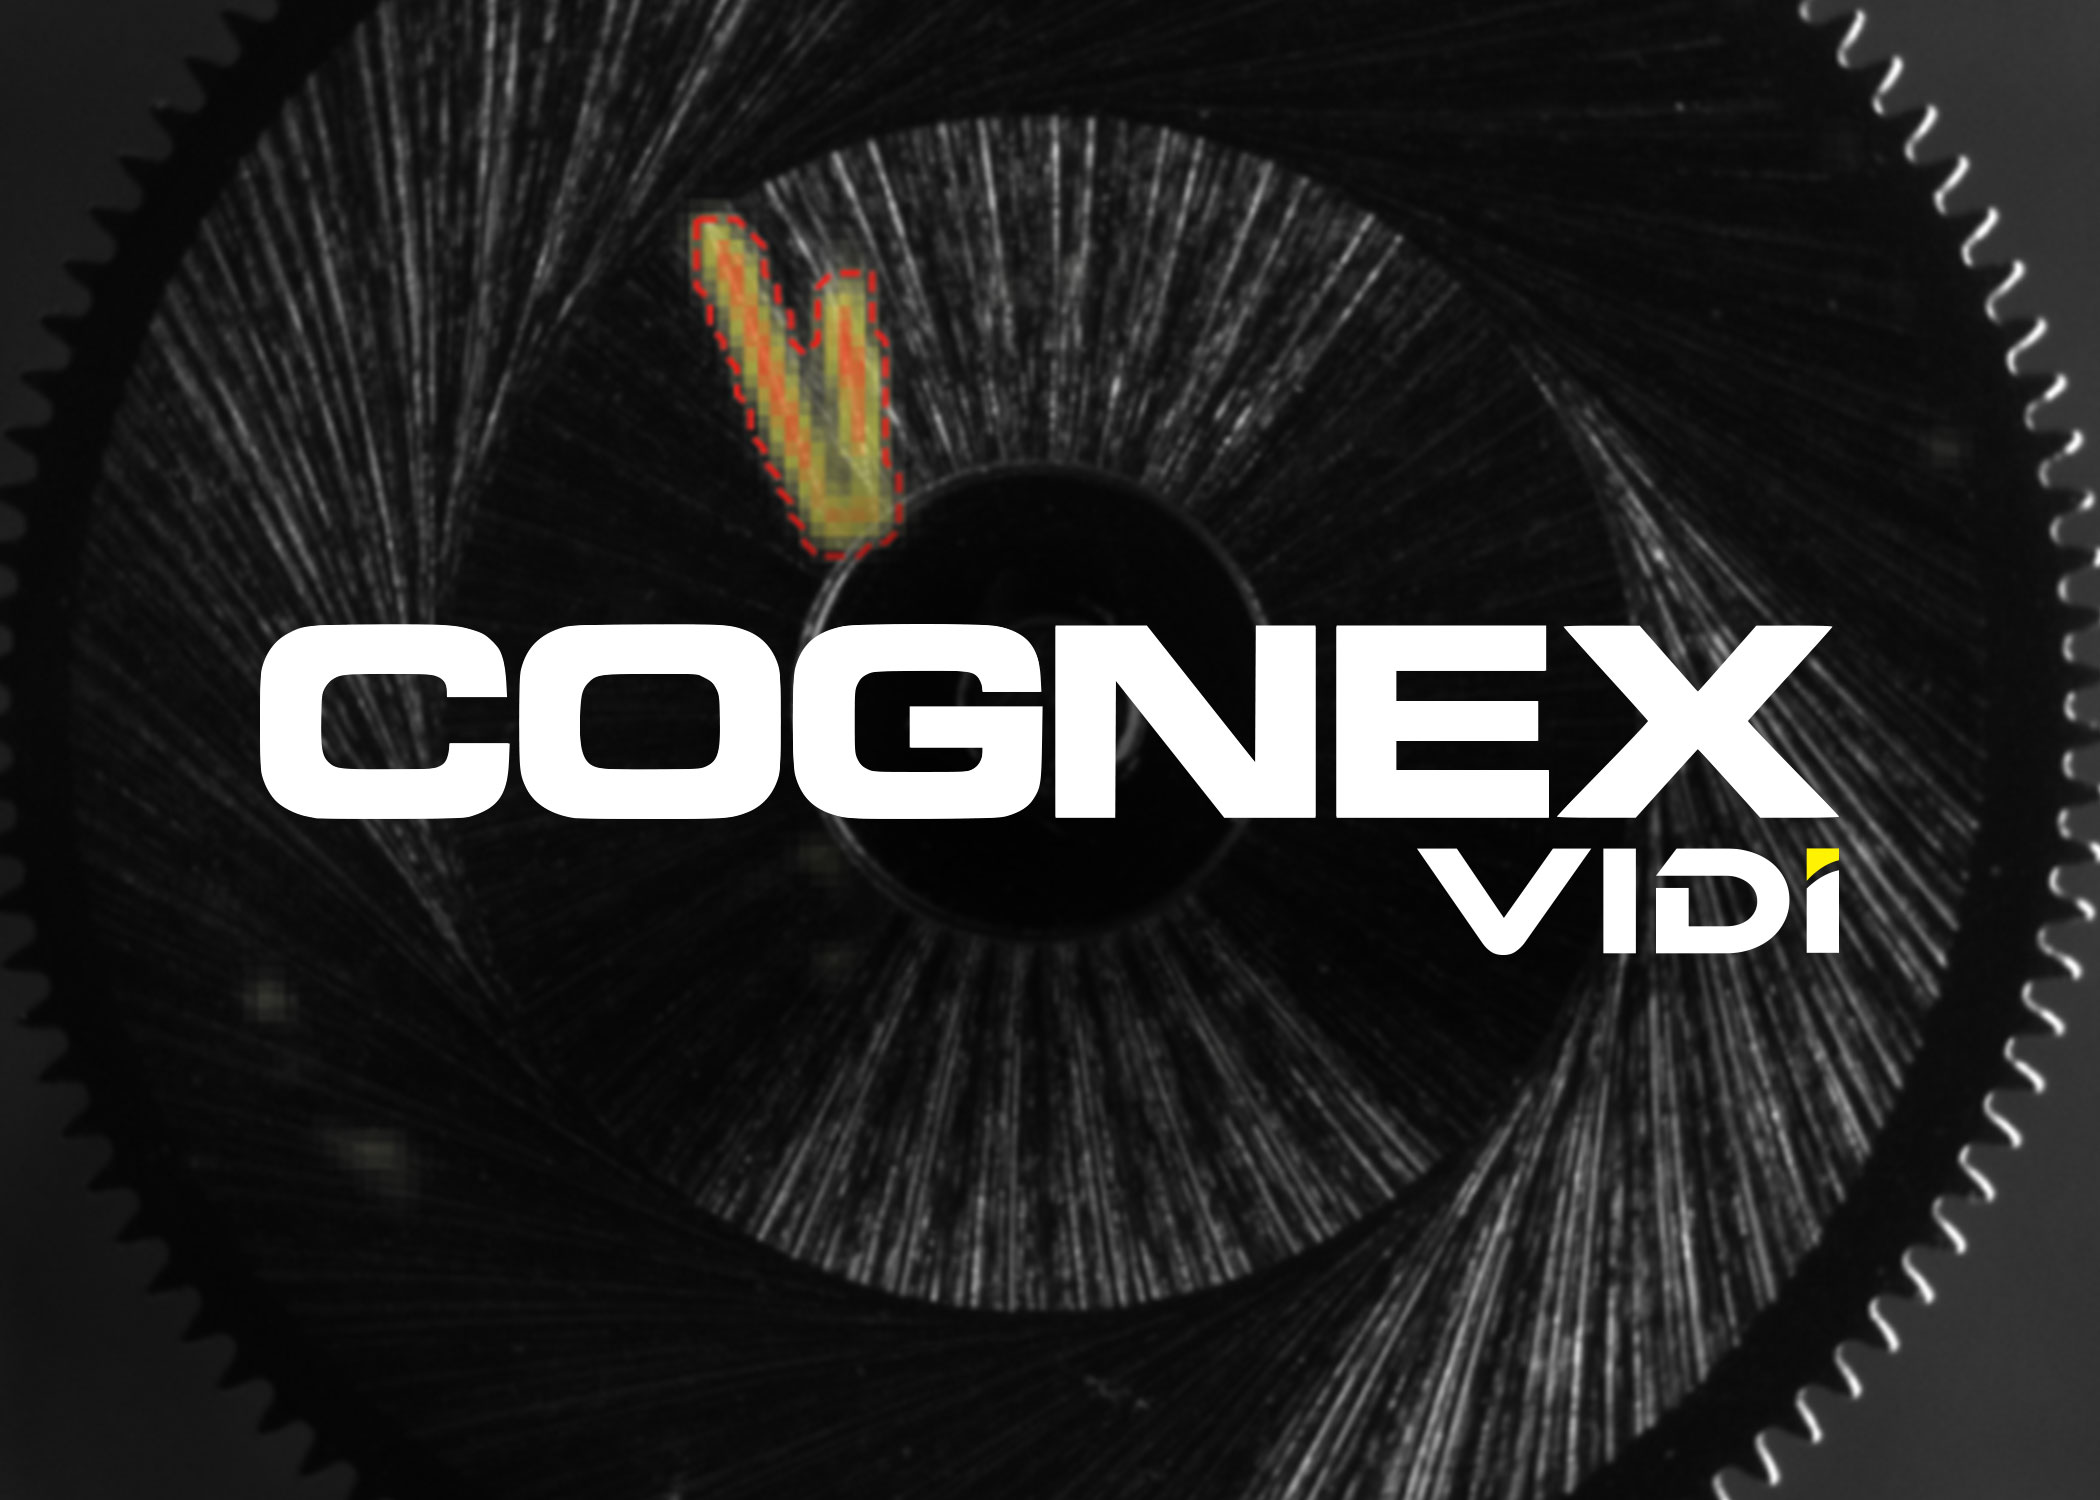 cognex vidi logo on black image with heat map identified defect